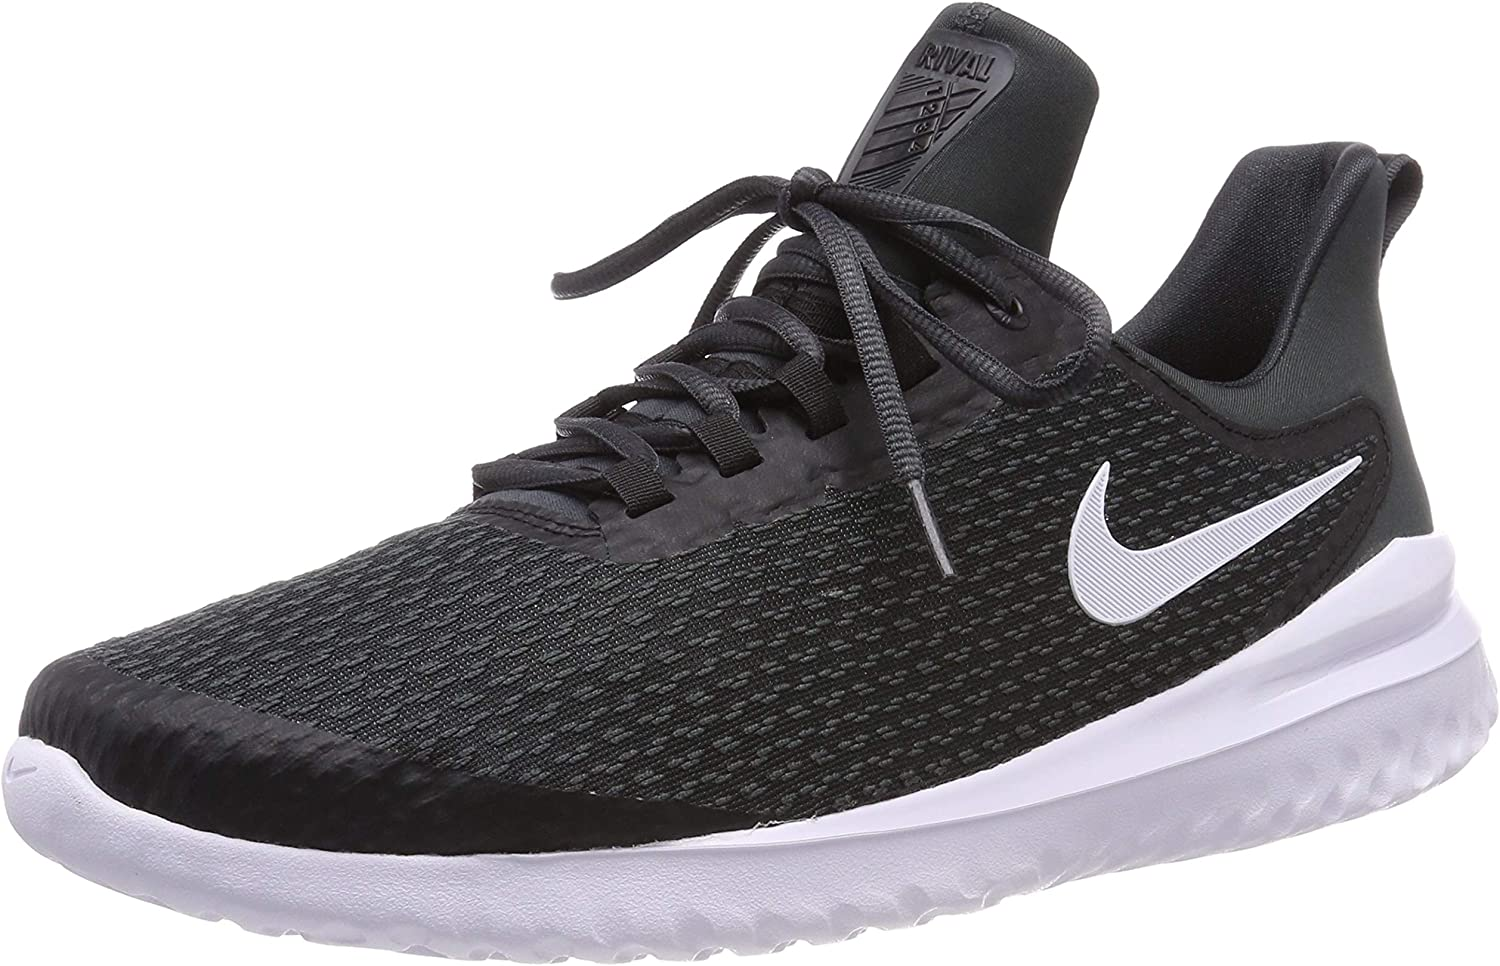 Nike Men's Running 7.75 Size Outlet sale feature Outlet ☆ Free Shipping Shoes